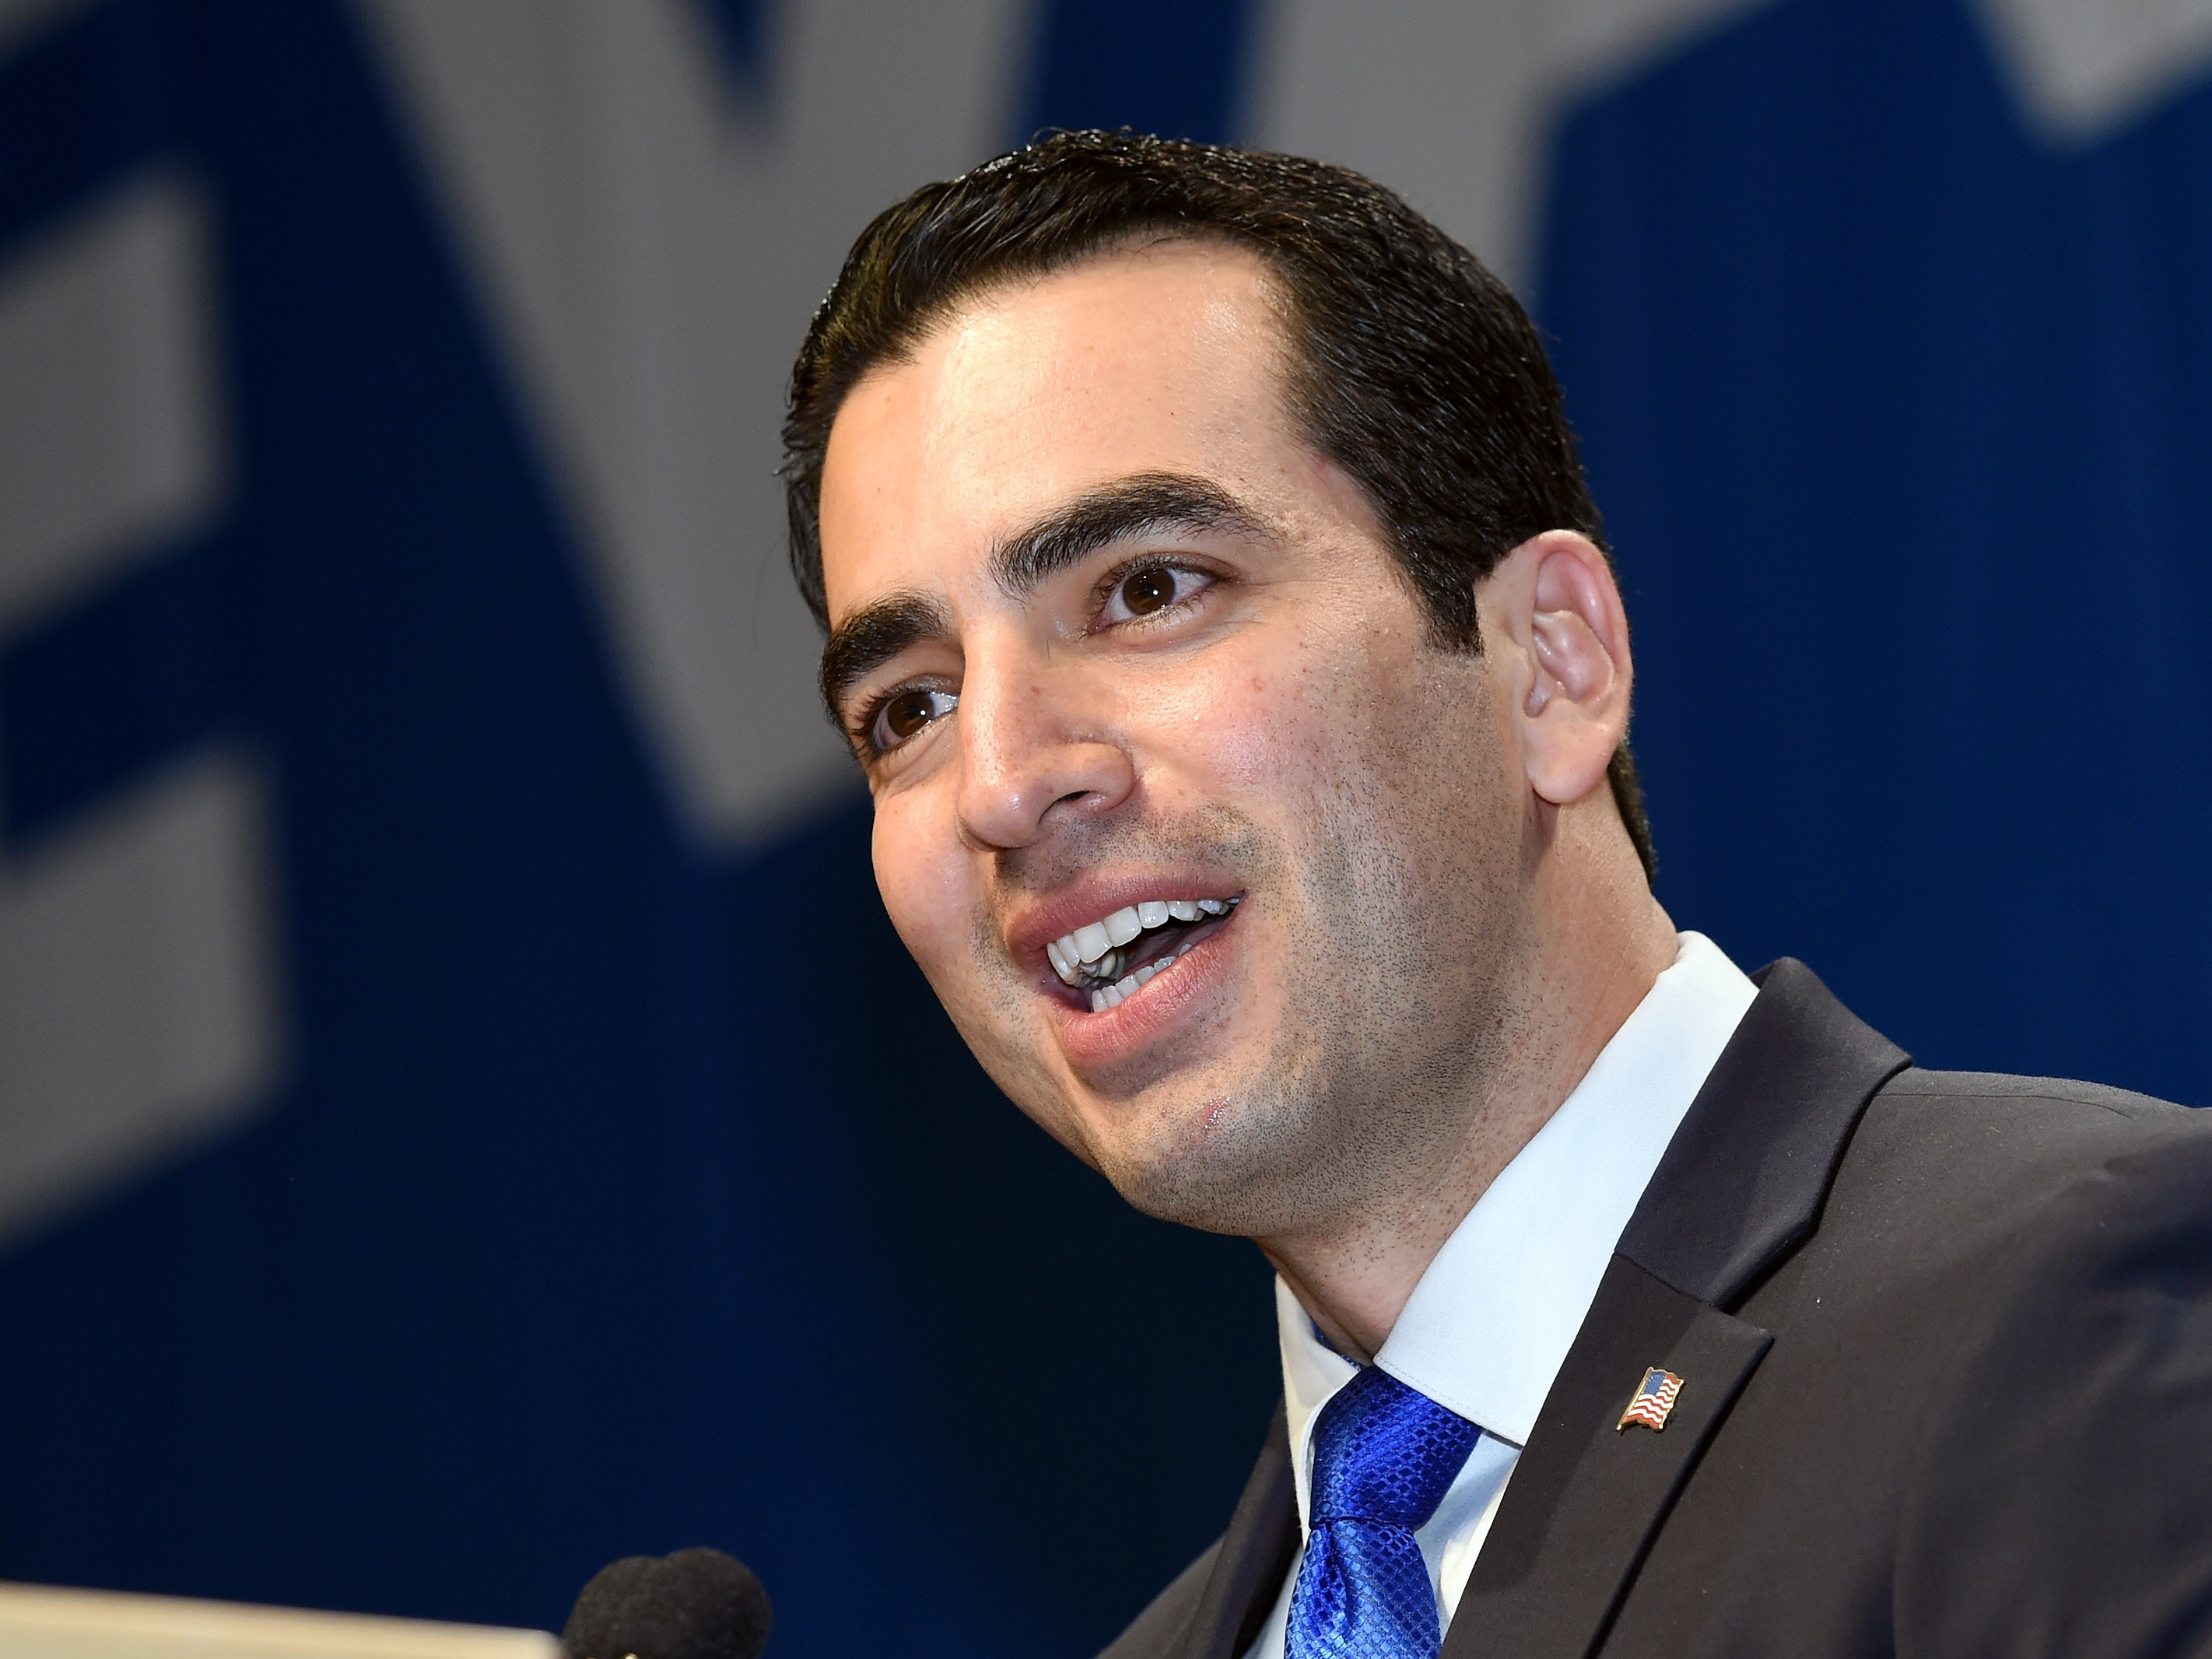 House Ethics Committee Investigating Nevada Rep. Kihuen Over Sexual Harassment Claims